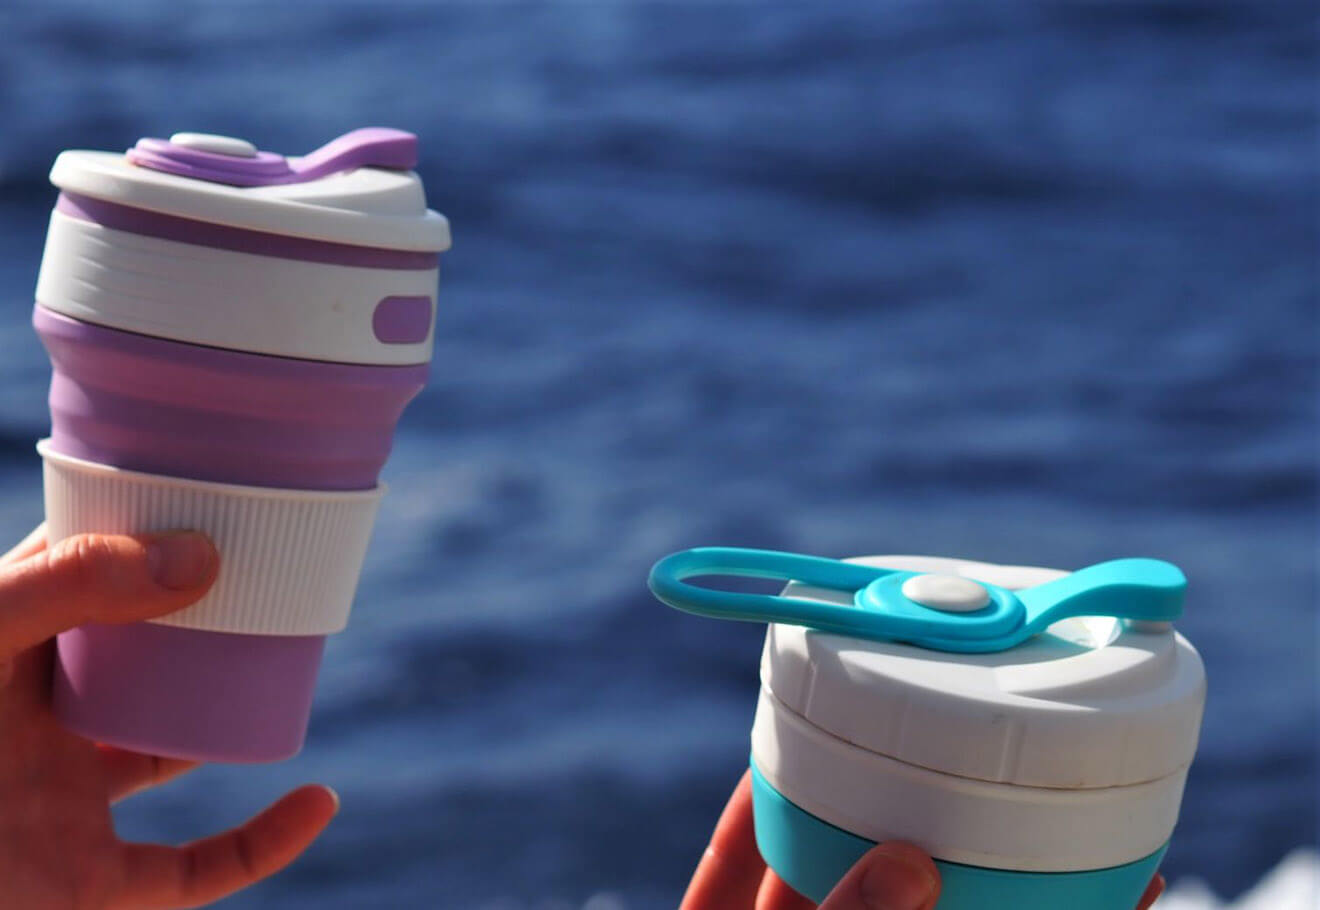 Carry a reusable cup